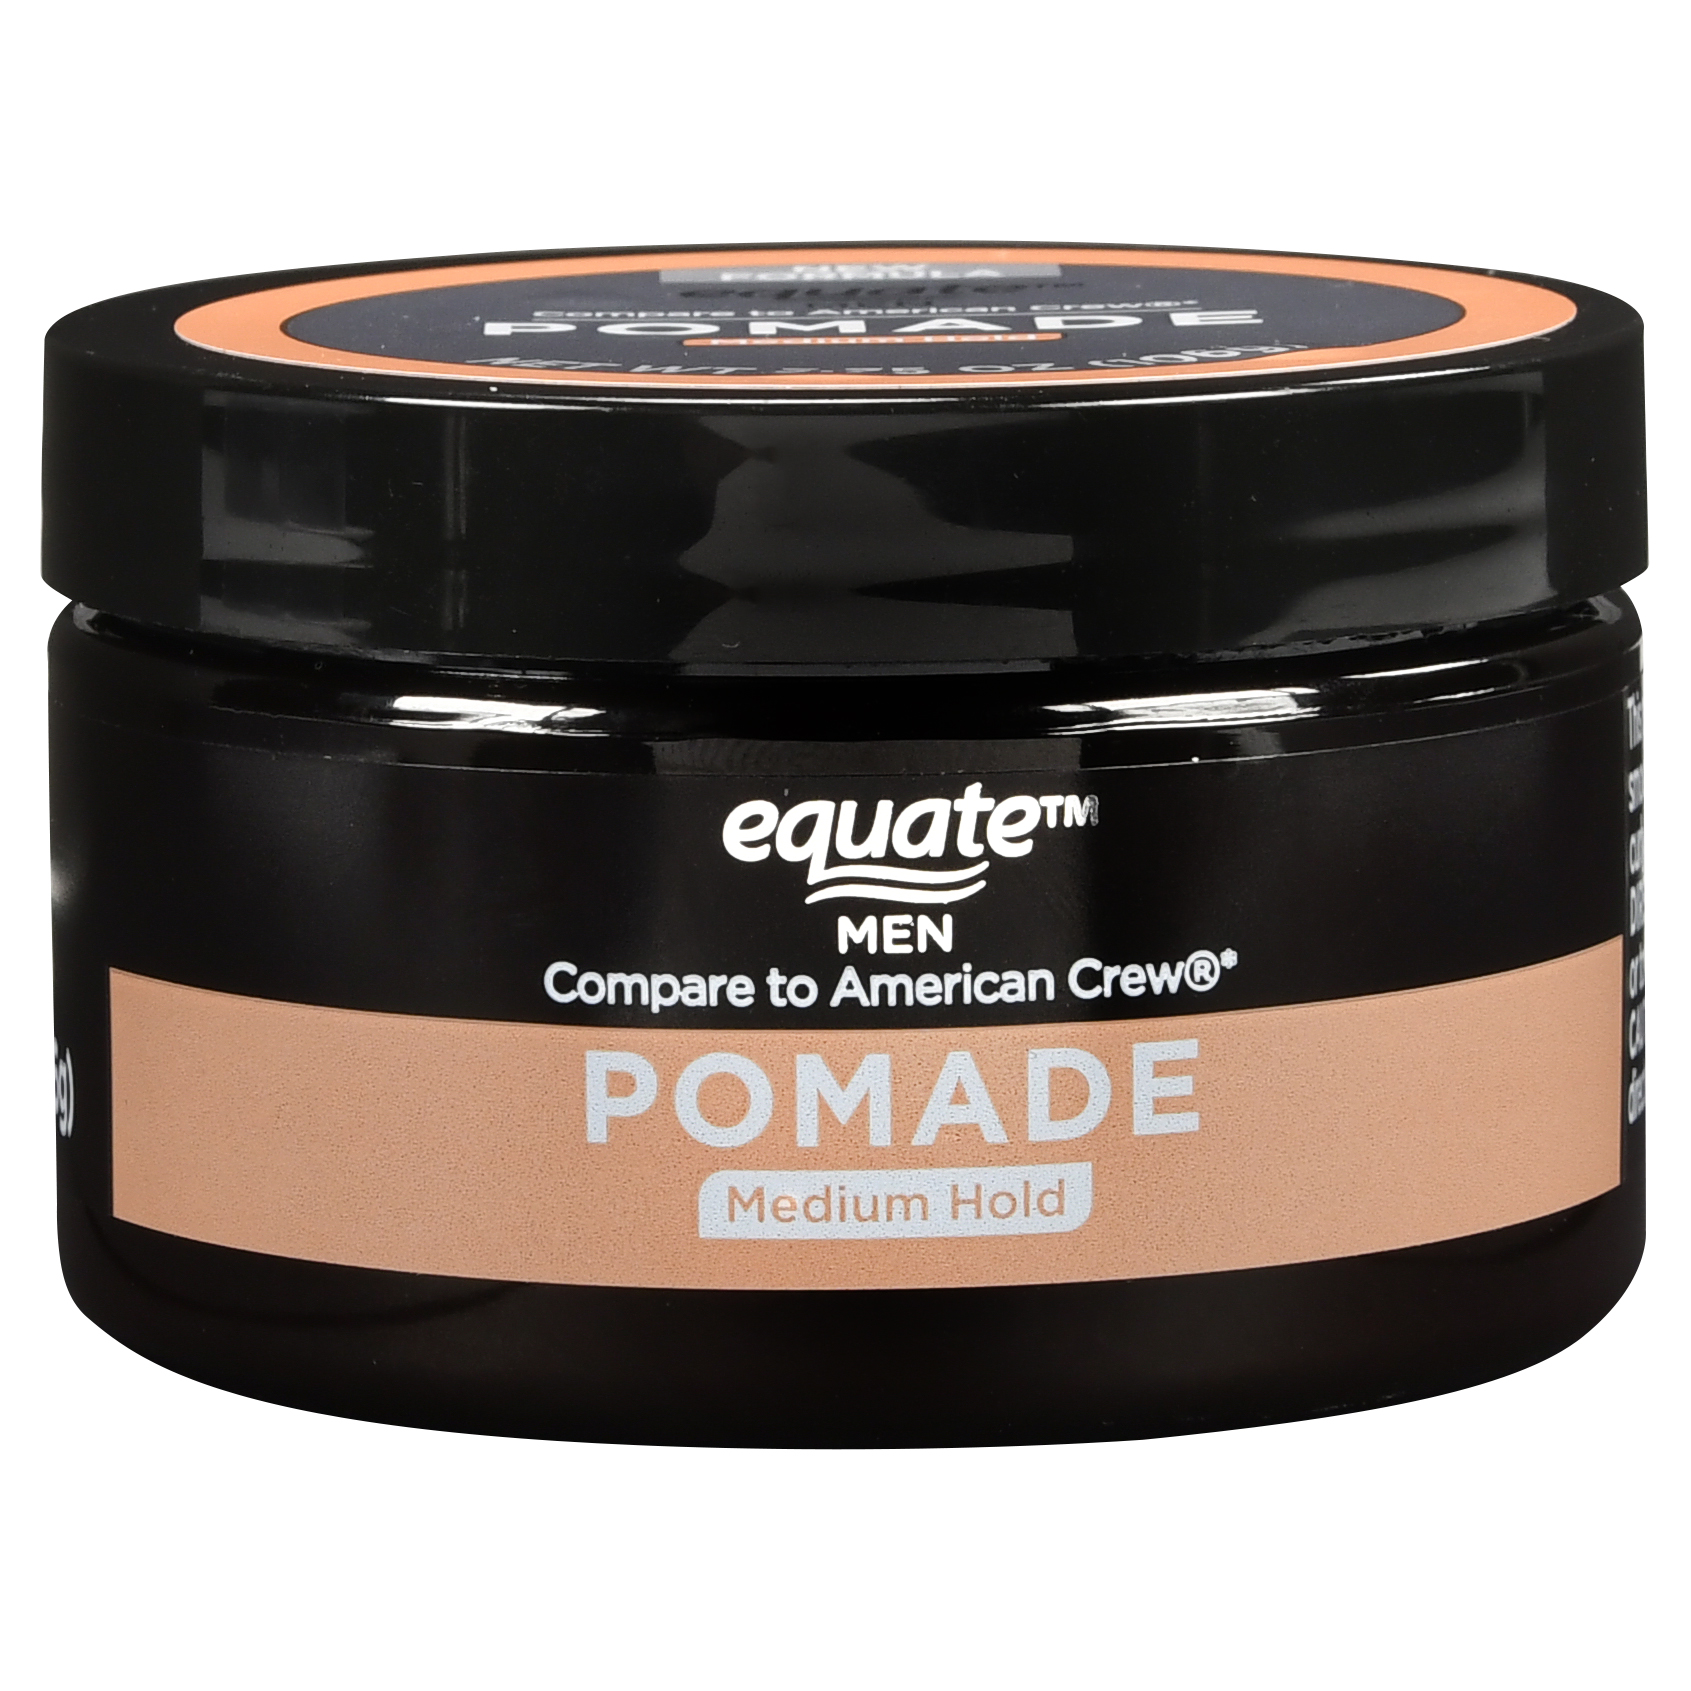 Equate Men Pomade, Medium Hold, 3.8 Oz